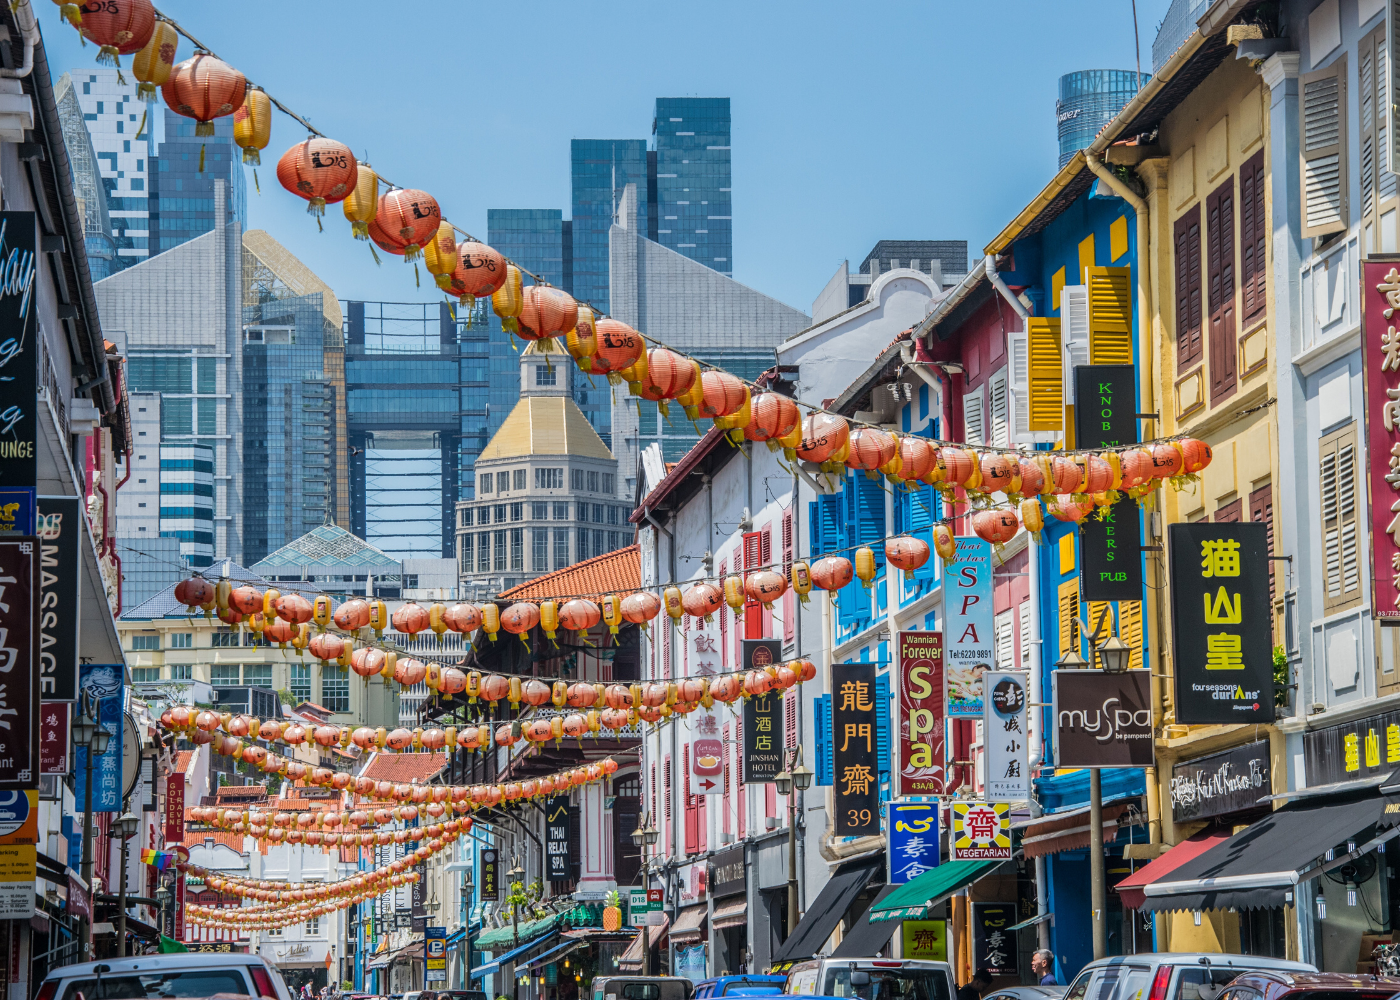 streets of chinatown | The ultimate 48-hour guide to Singapore